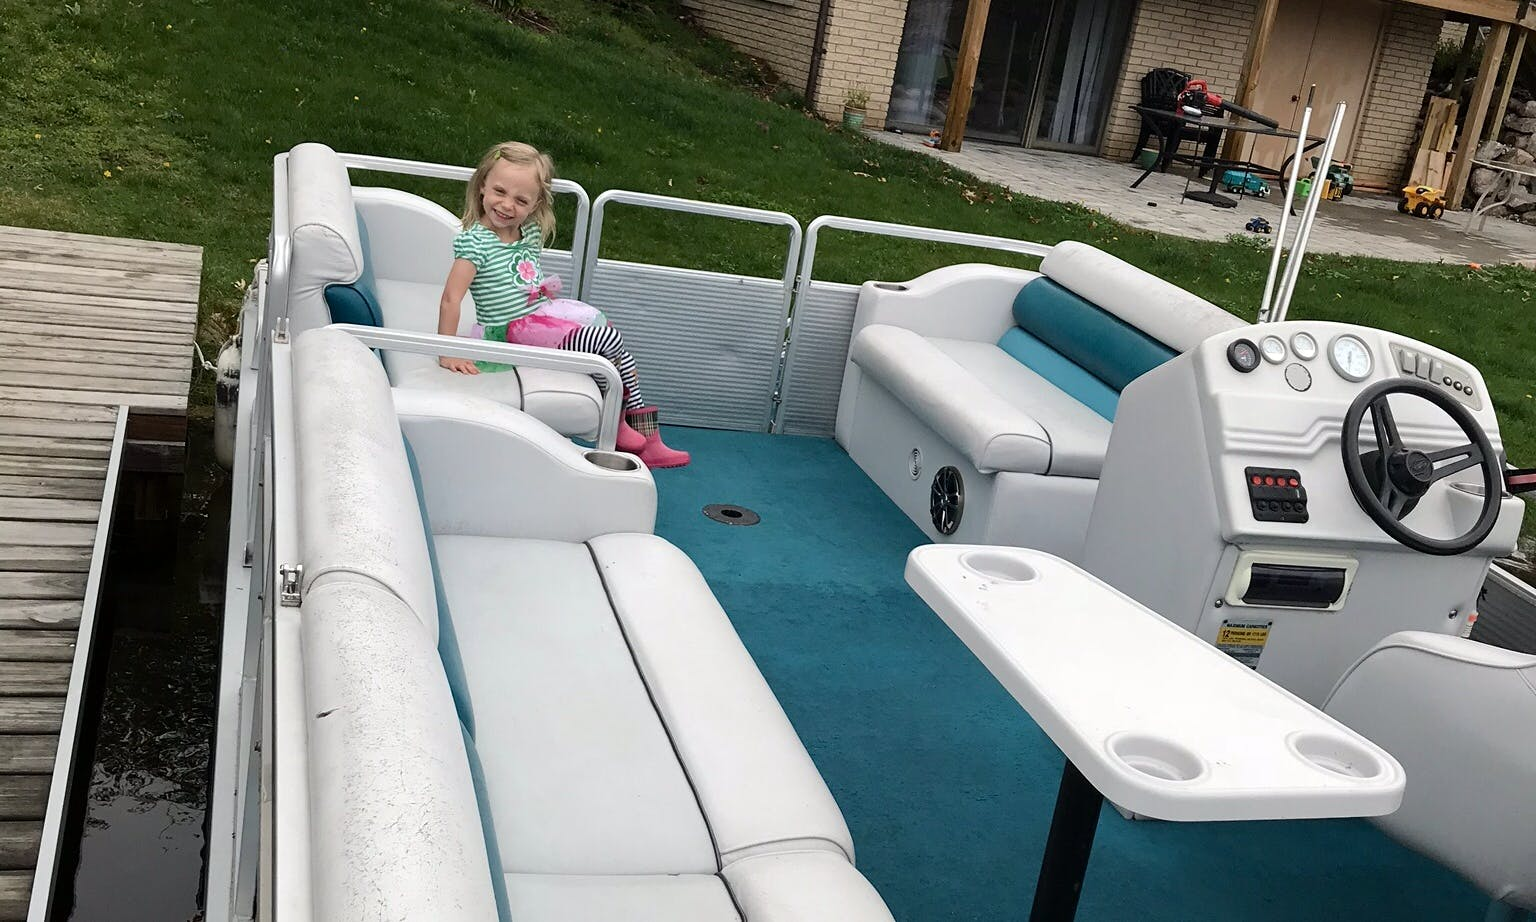 Pontoon in Highland Charter Township